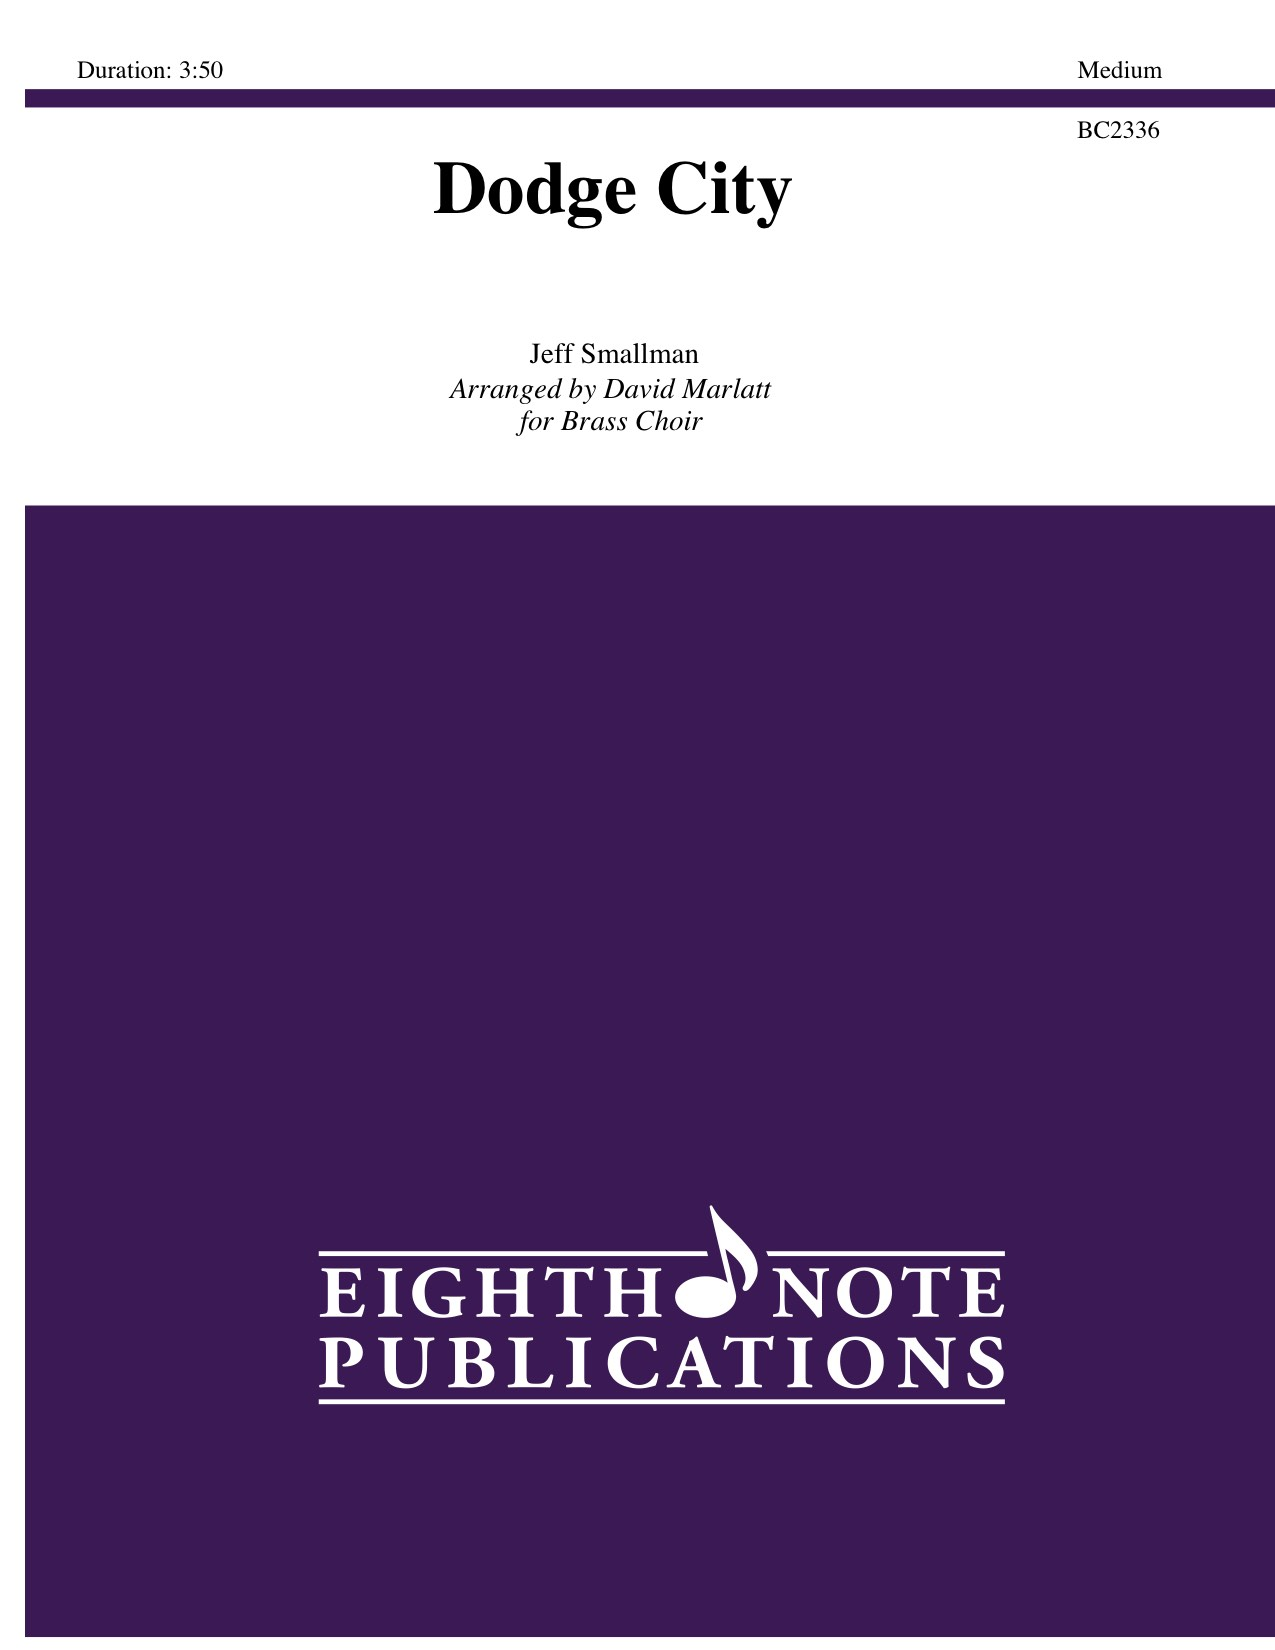 Dodge City - Jeff Smallman